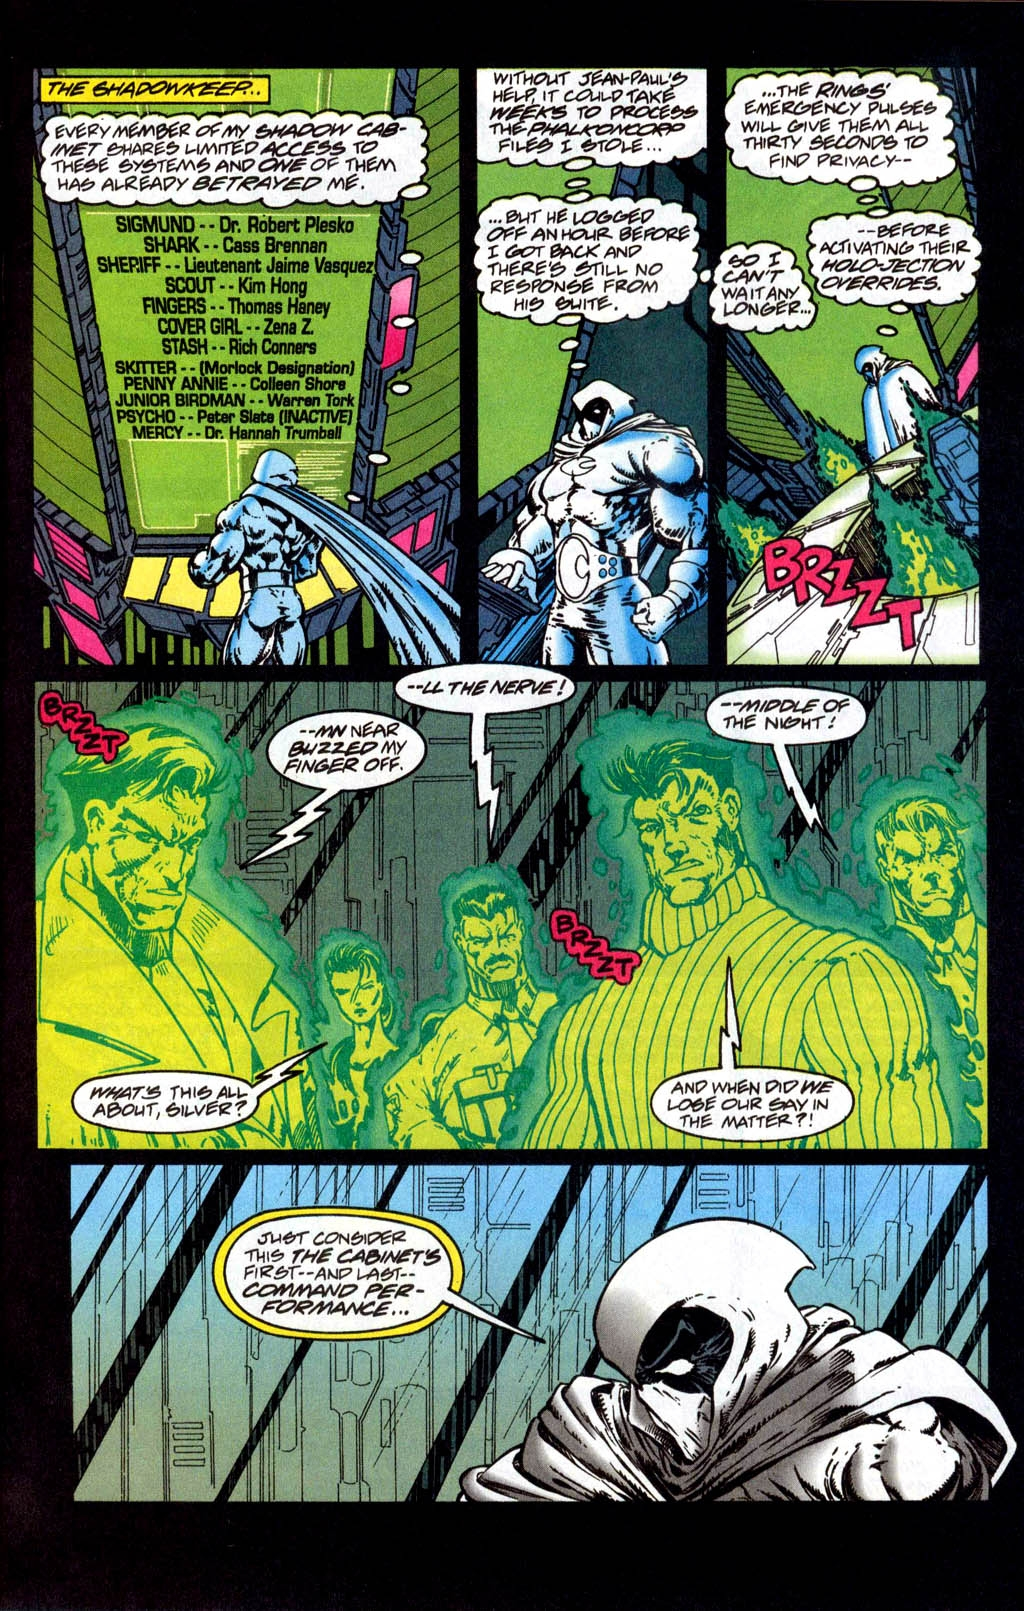 Marc Spector: Moon Knight (1989) #56 page 9, in Erik